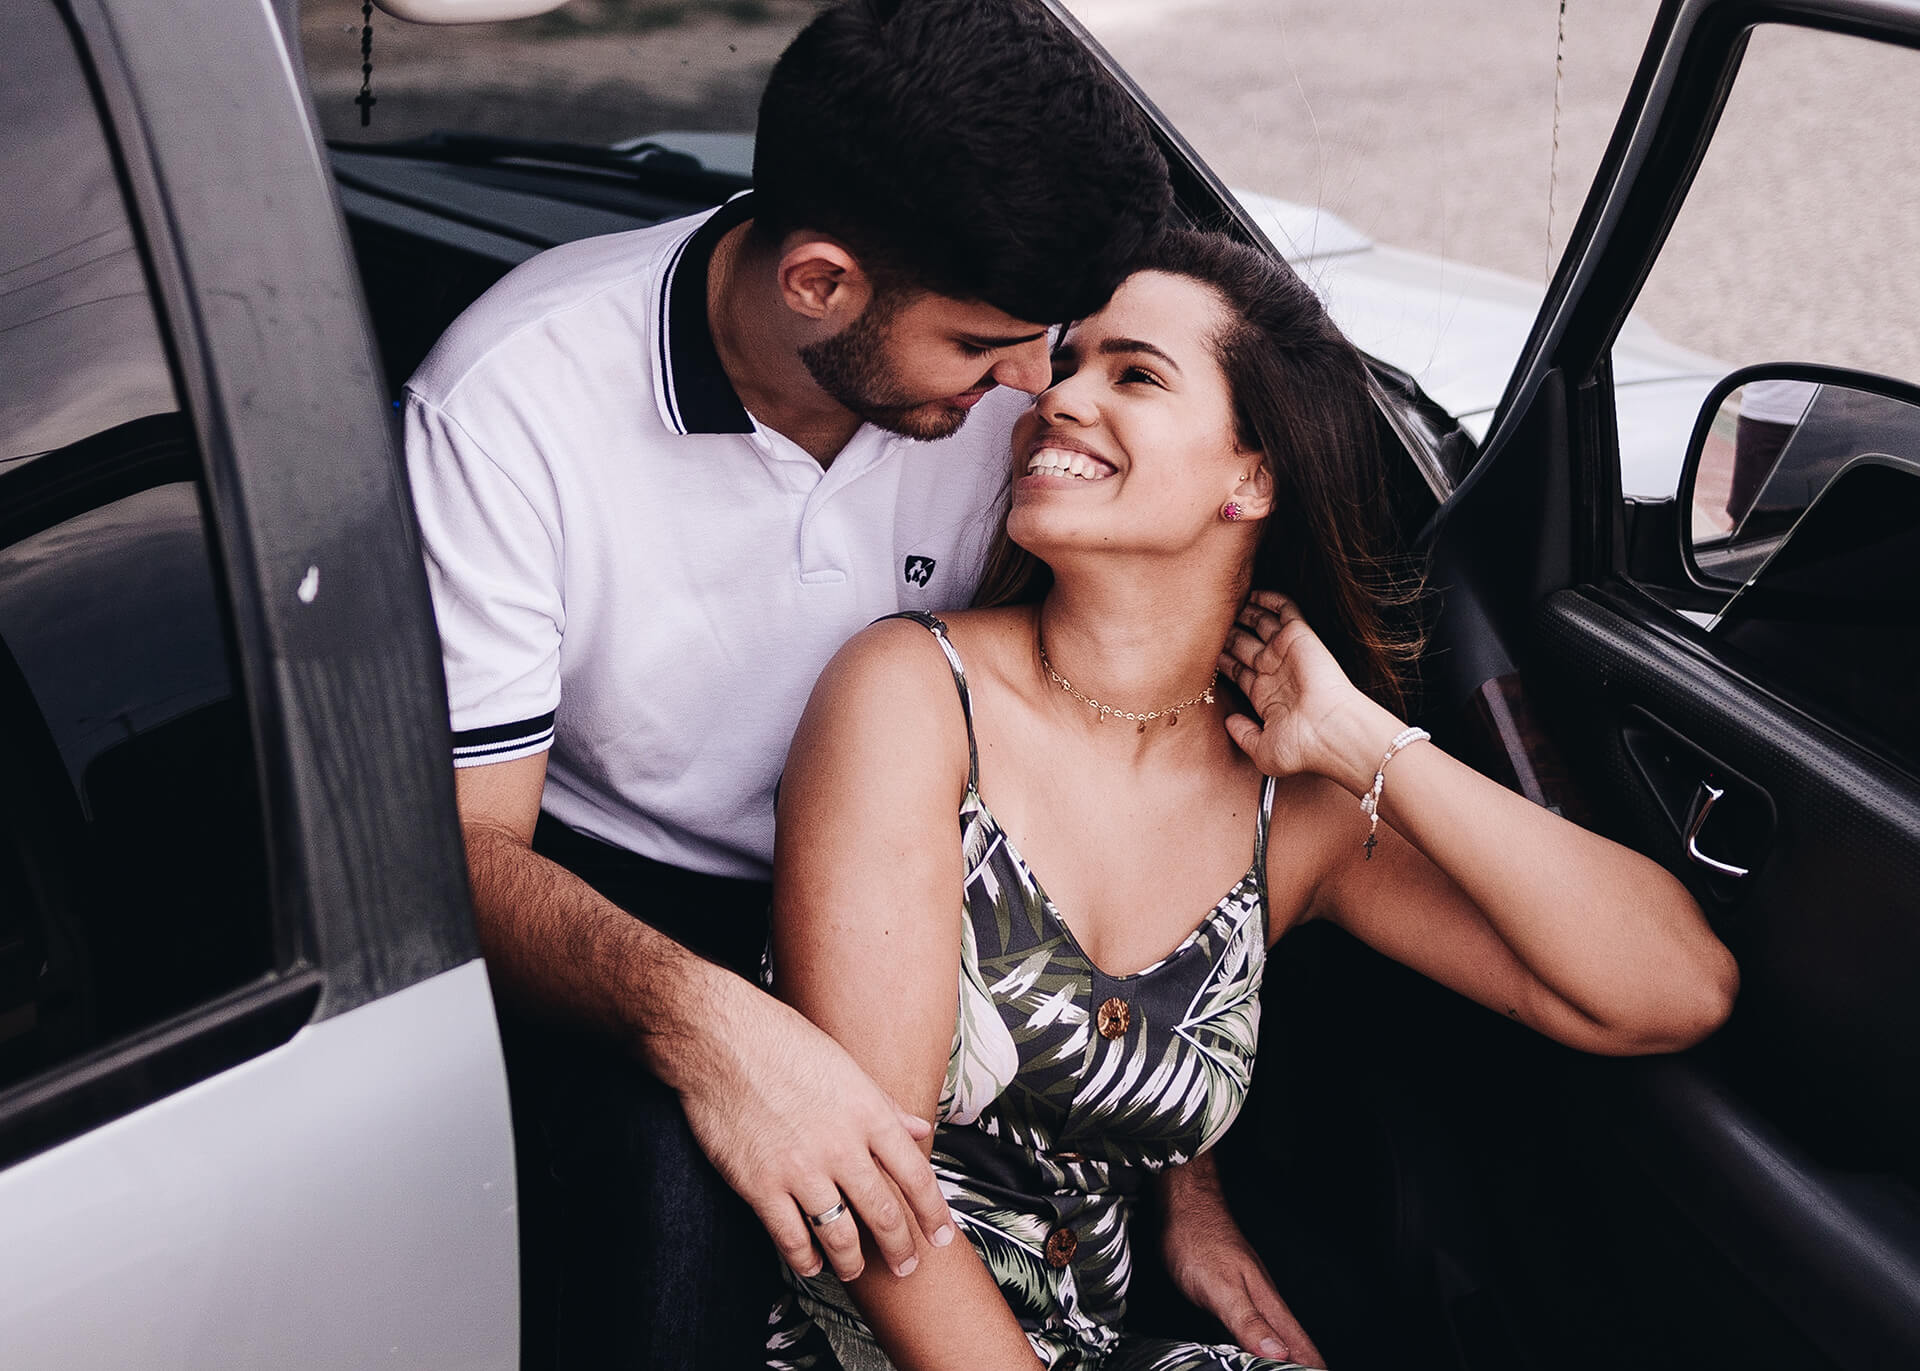 man and woman in a car